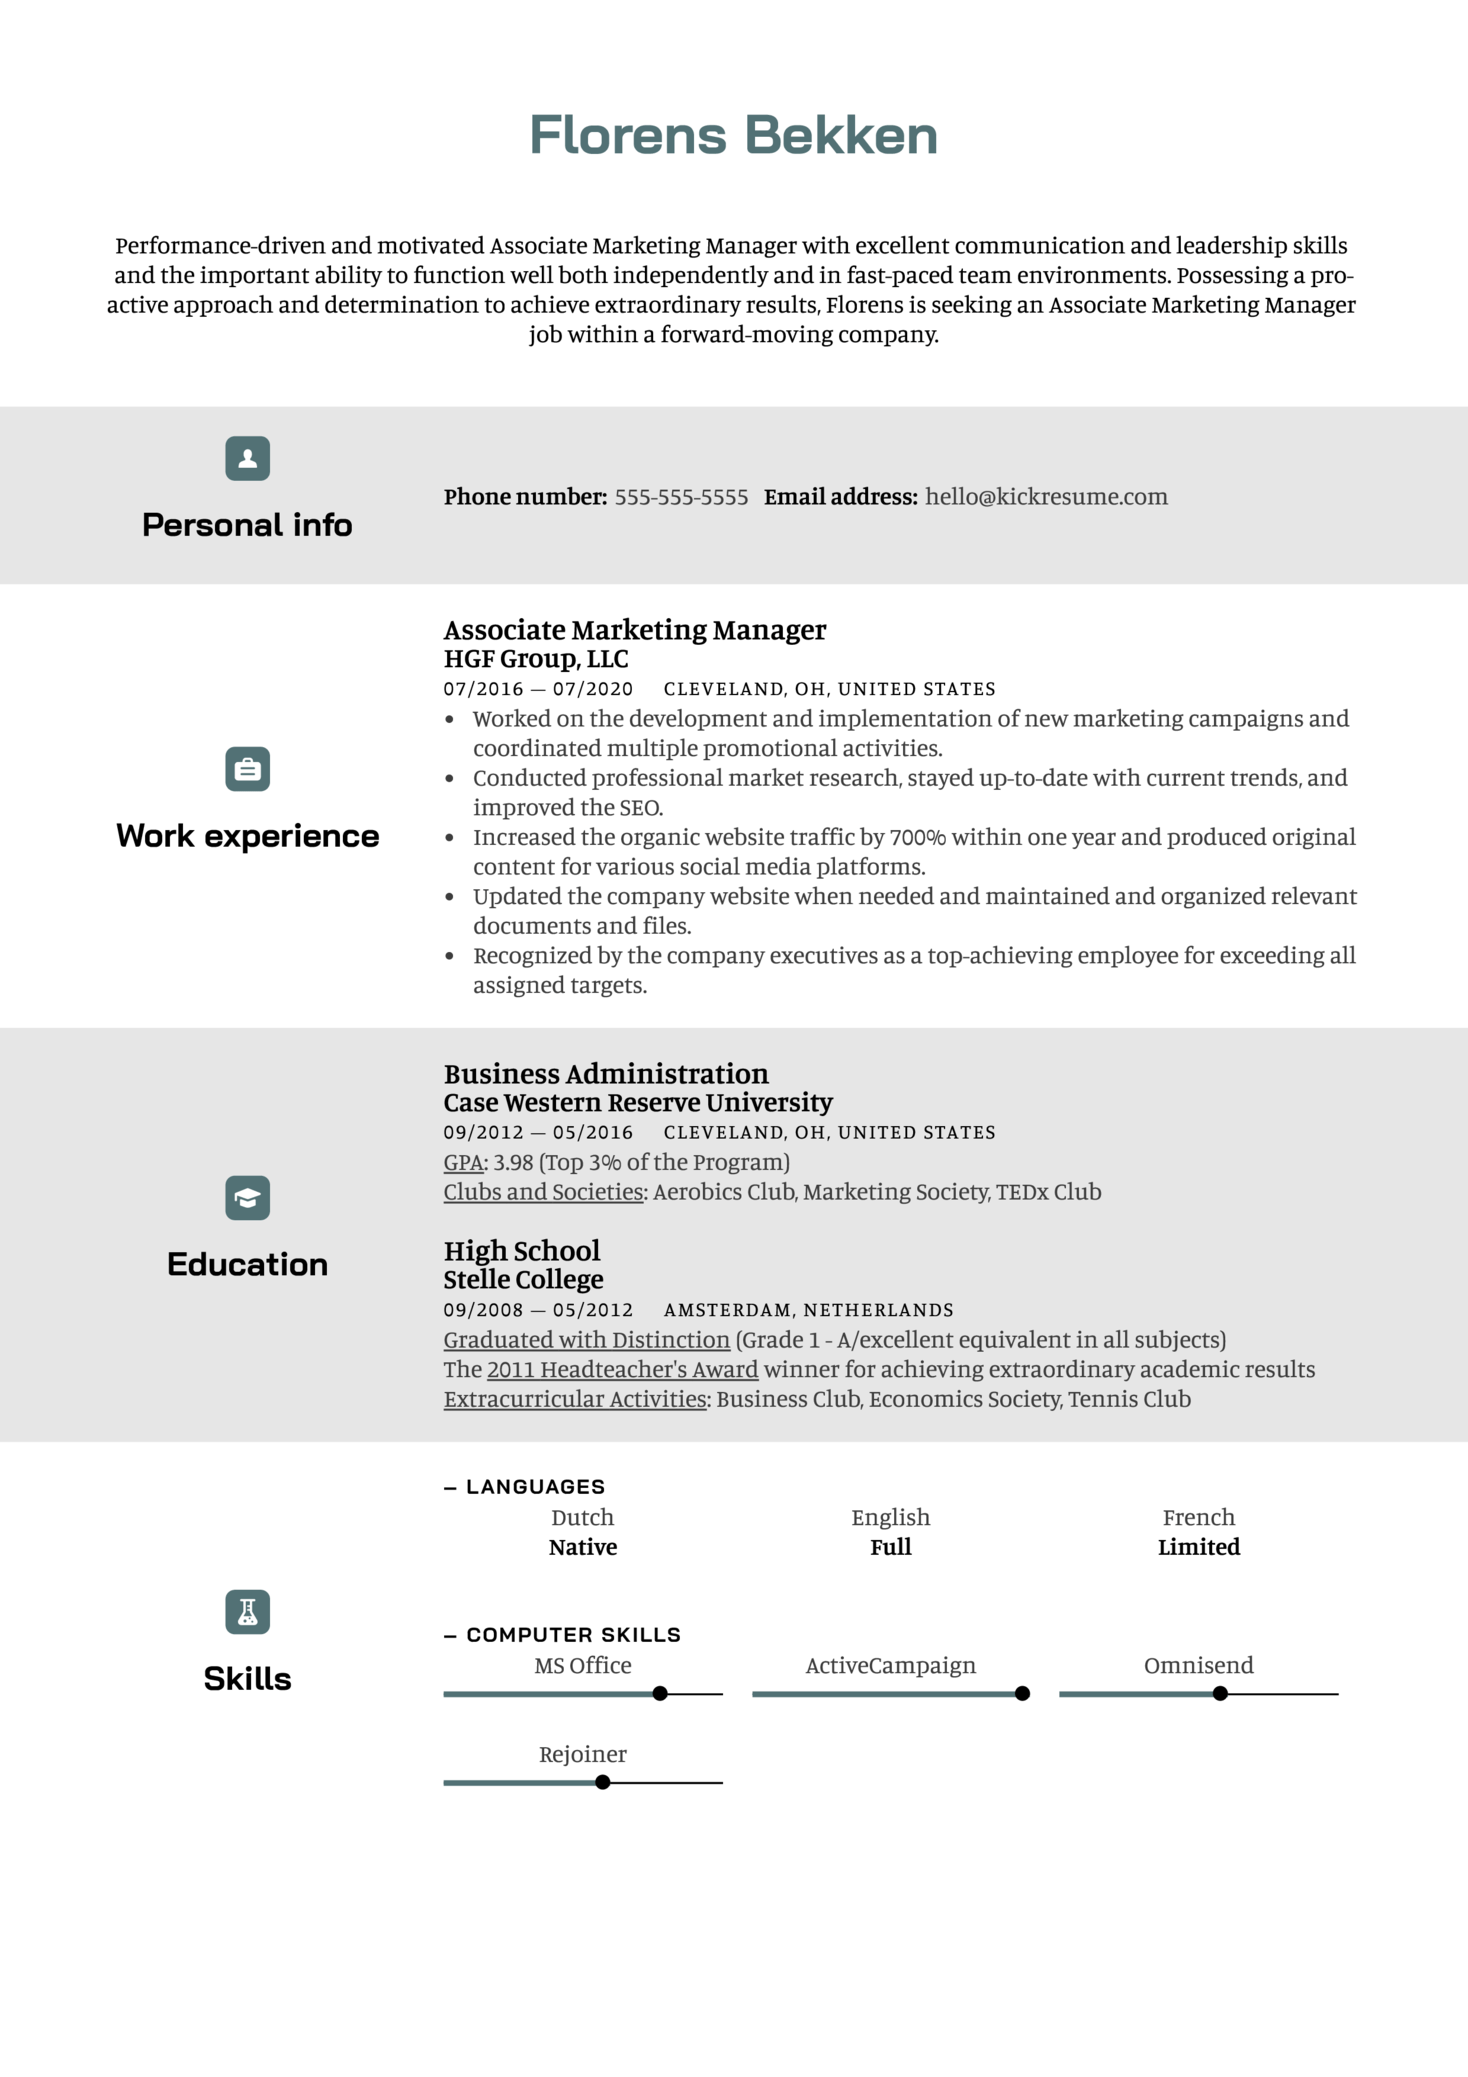 Chronological Resume Template (Part 1)